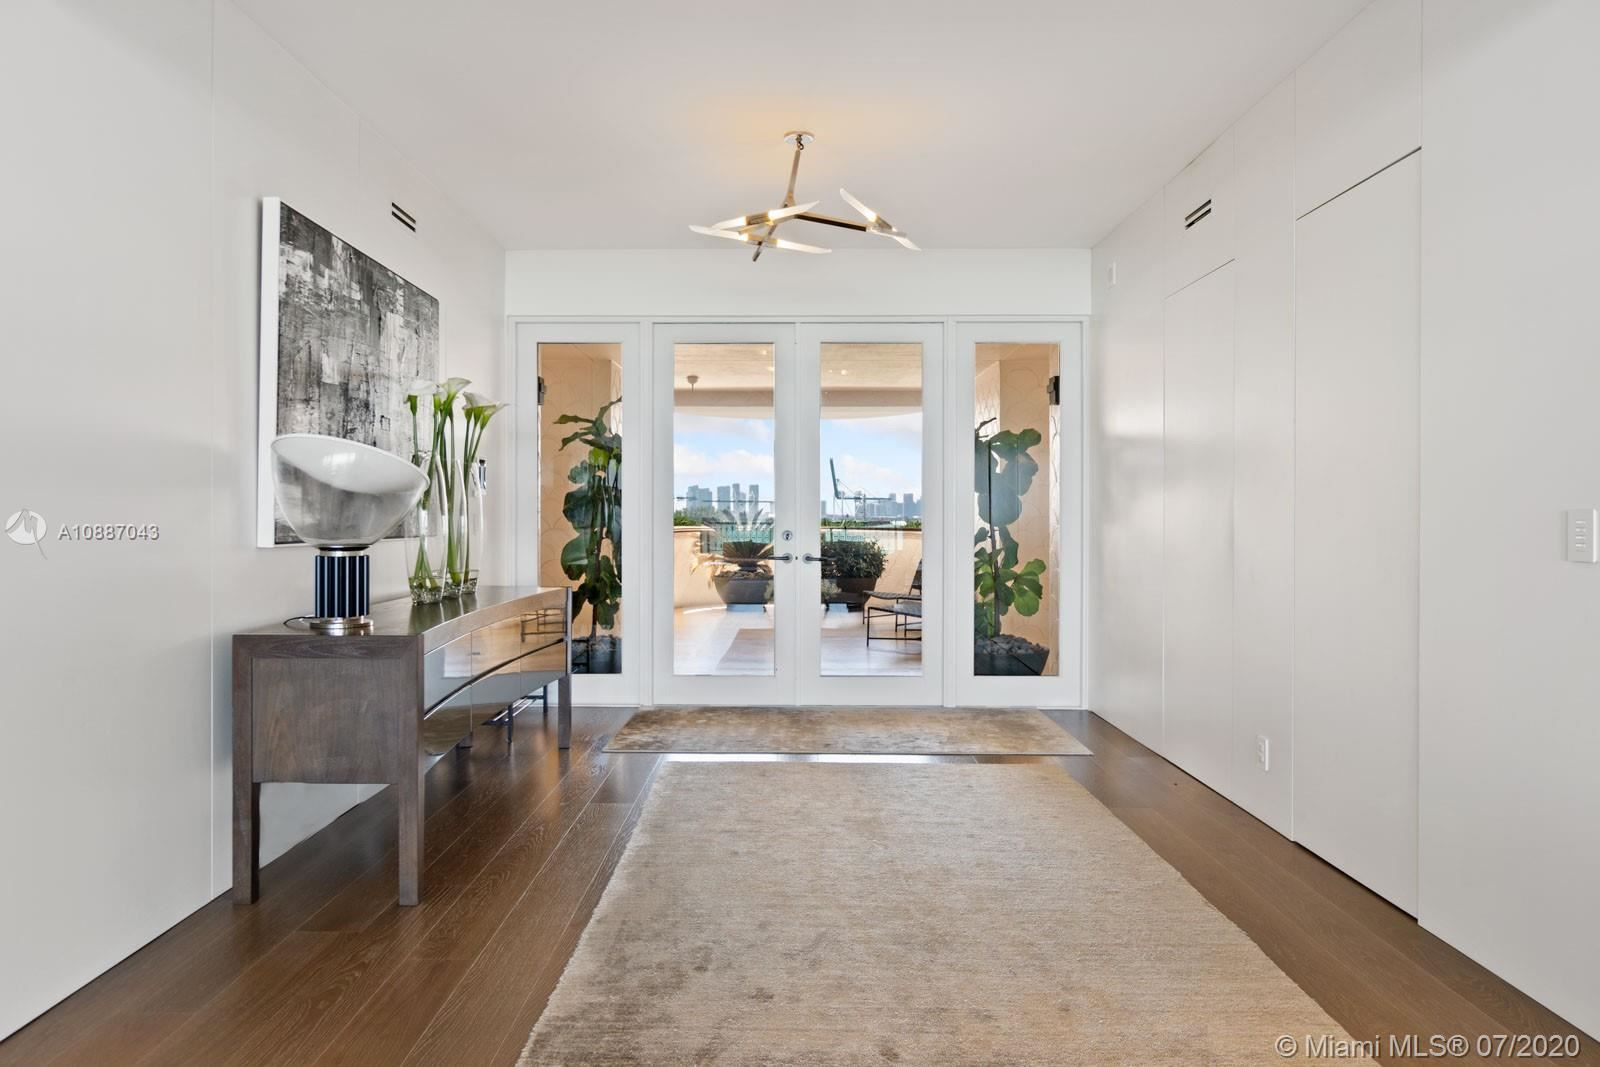 Photo 15 of Listing MLS a10887043 in 7764 Fisher Island Dr #7764 Miami Beach FL 33109